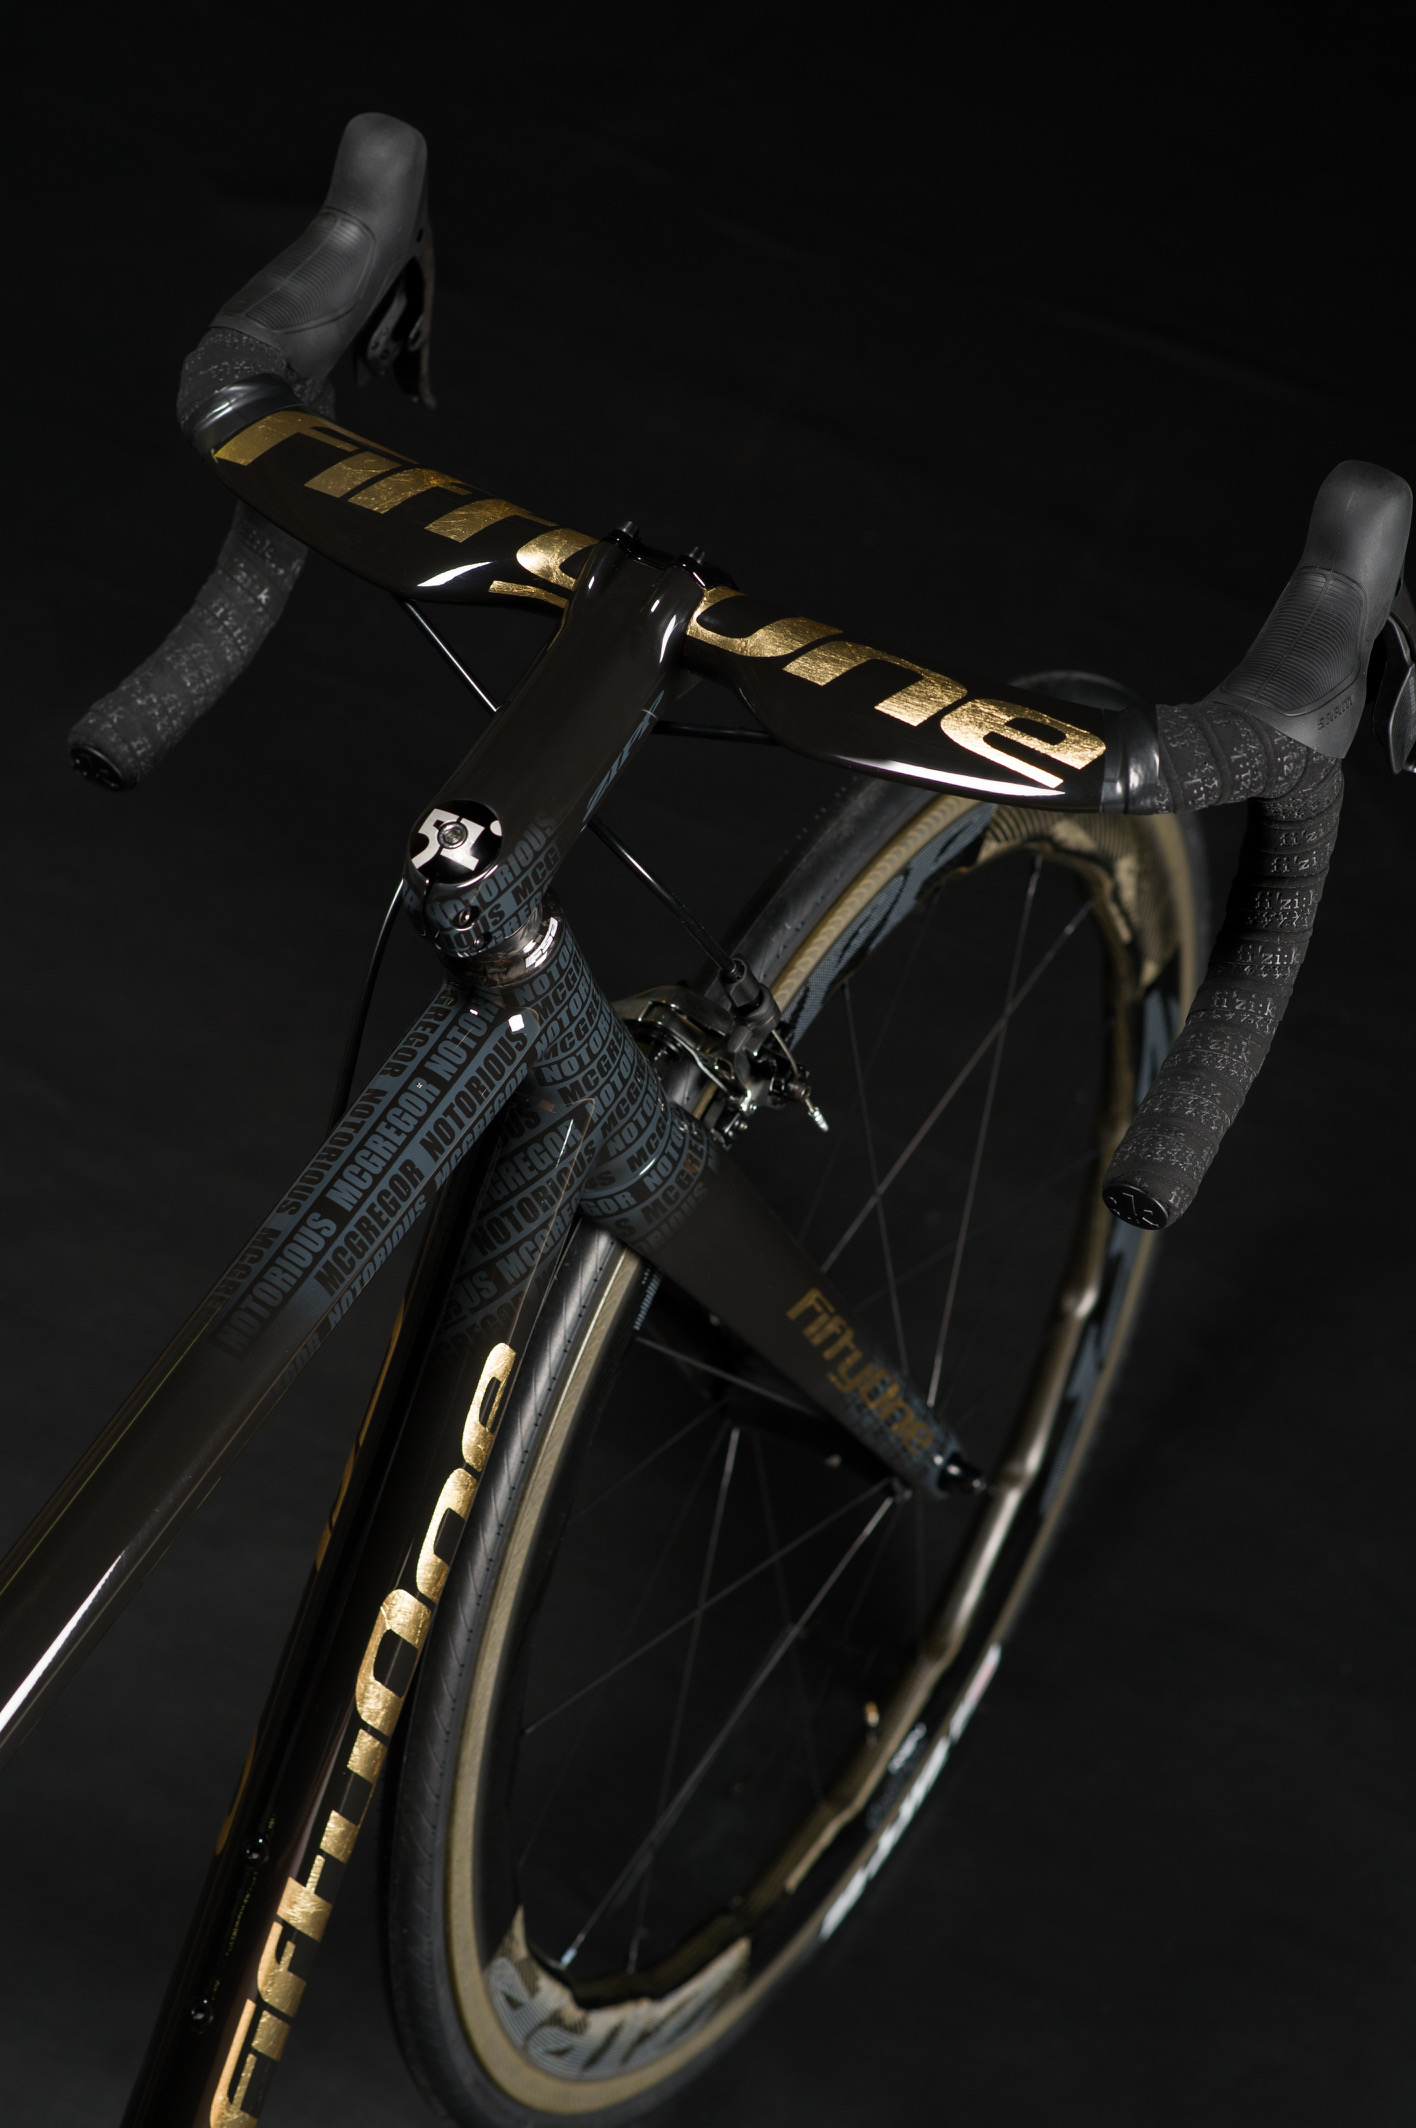 Connor McGregor rides into his next fight on a custom ride from FiftyOne Bikes